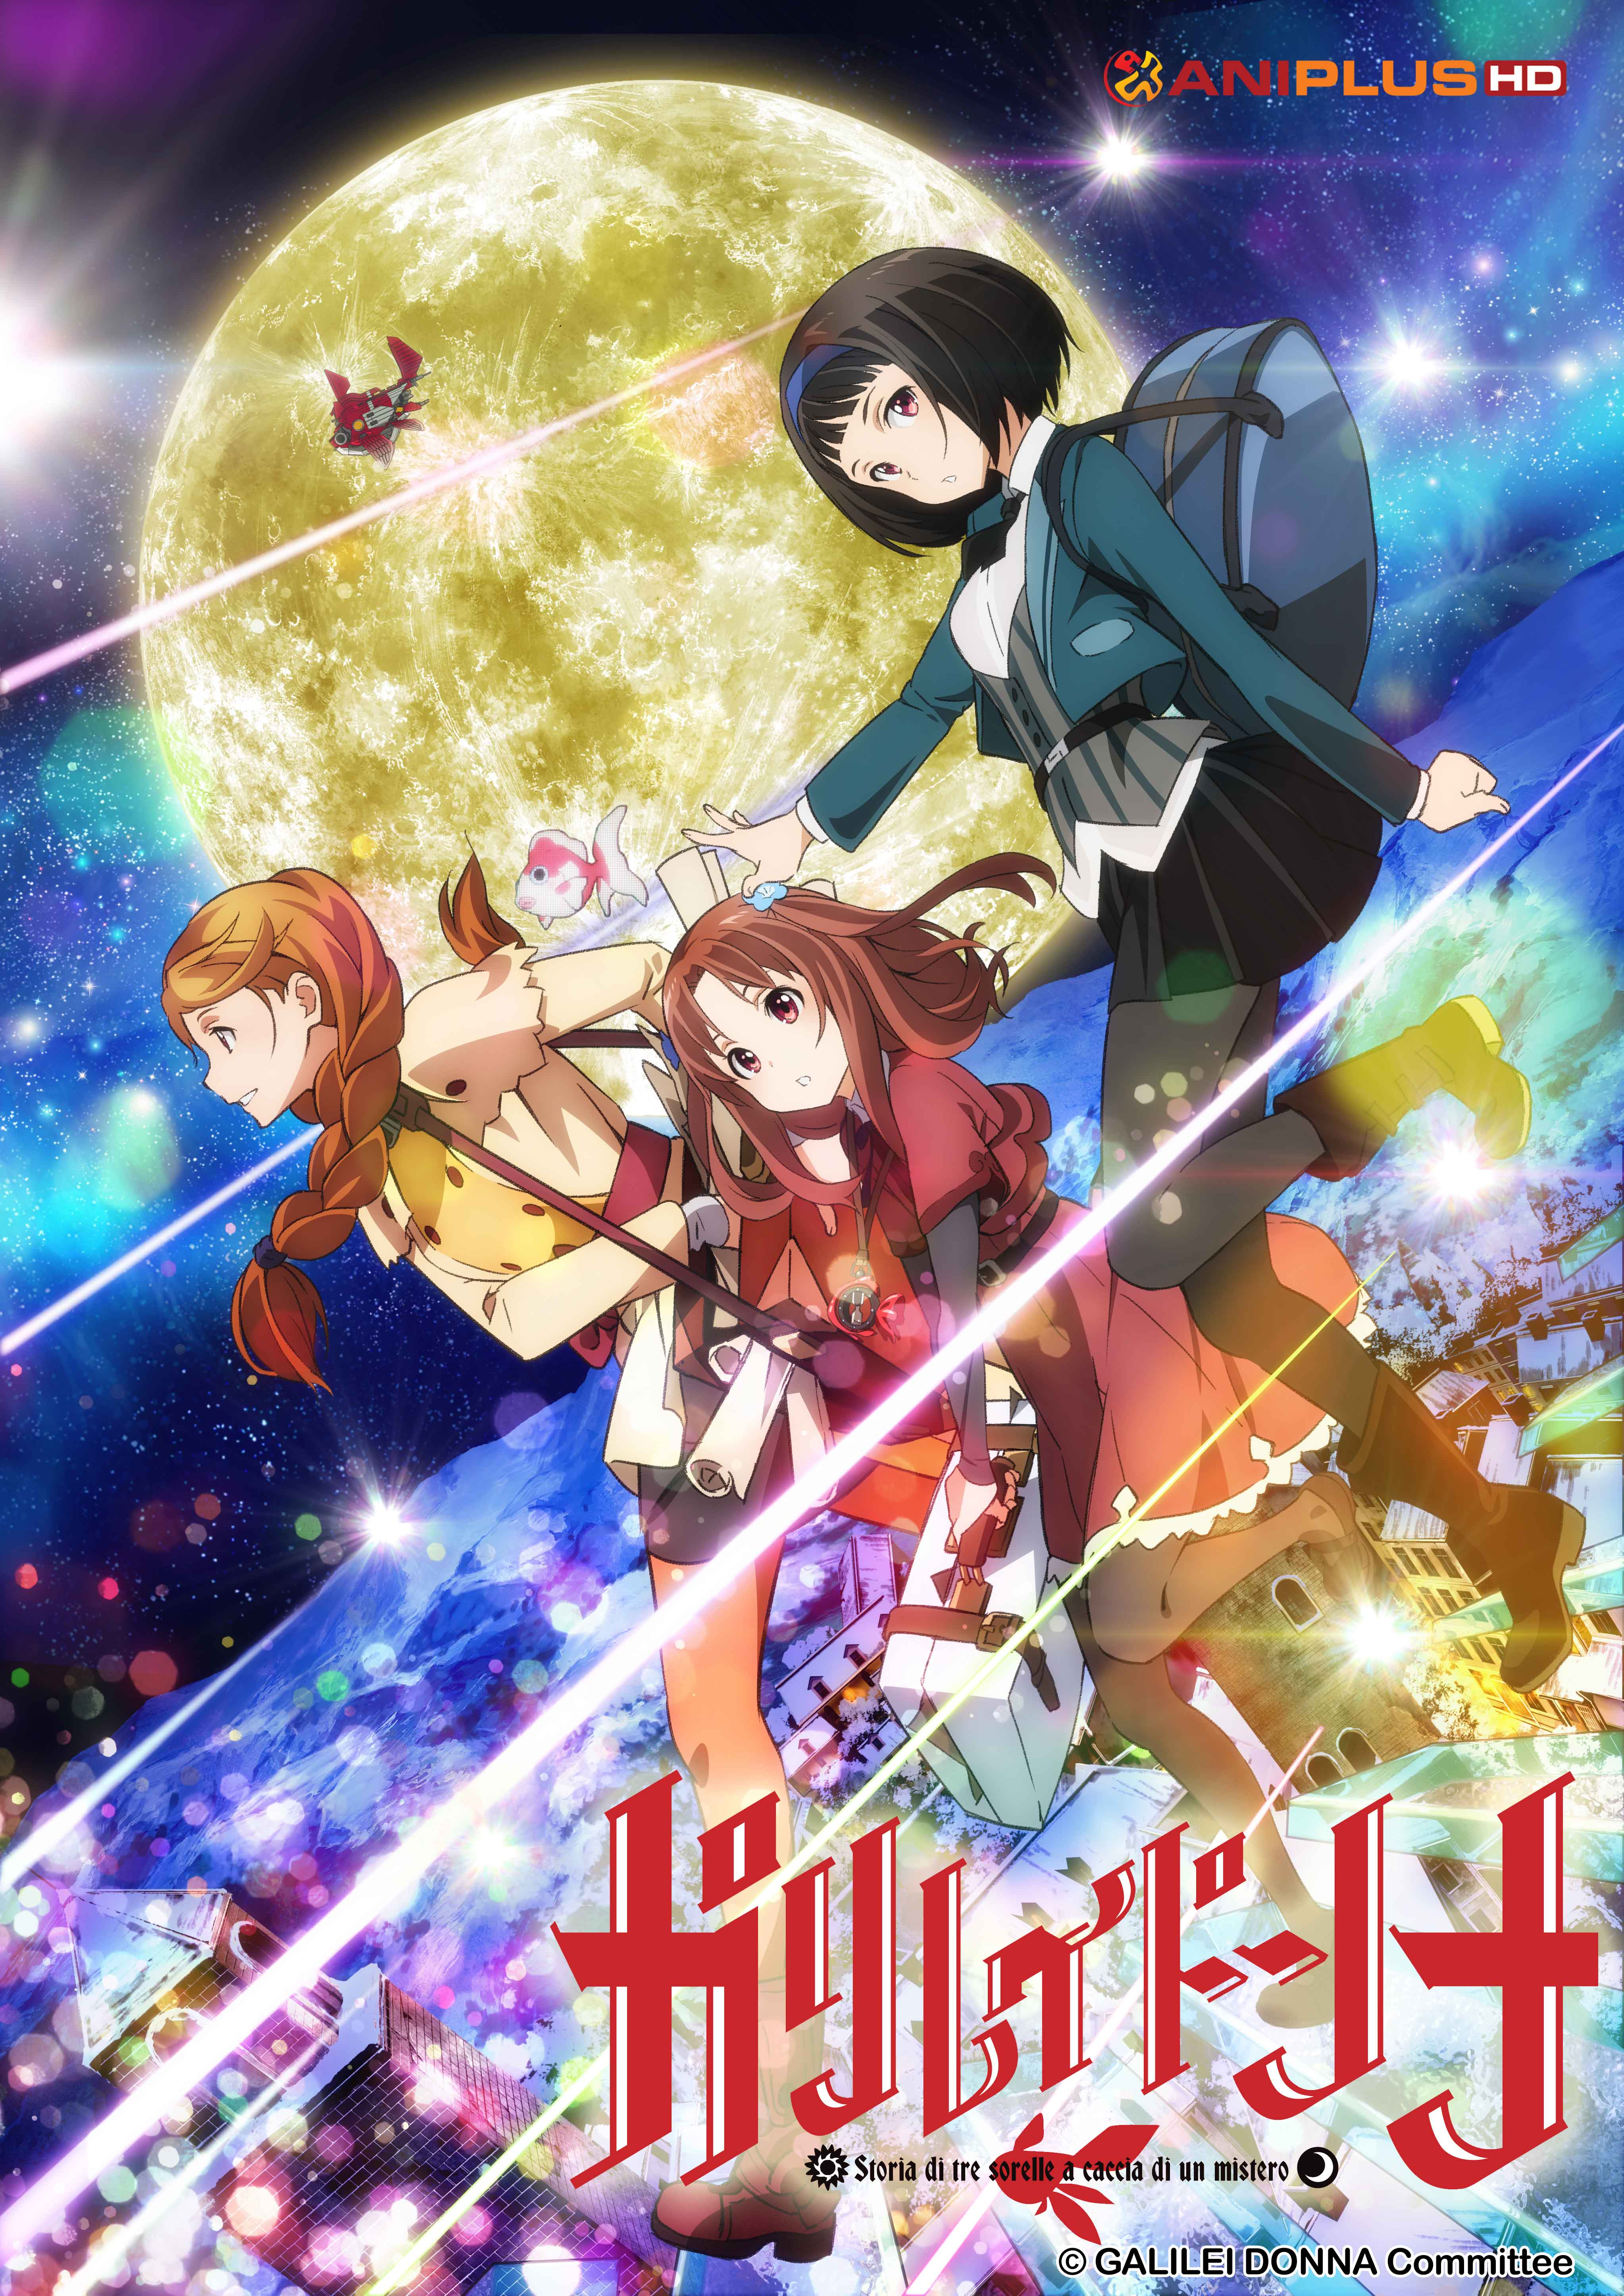 [Latest]ANIPLUS HD highlights for the month of December